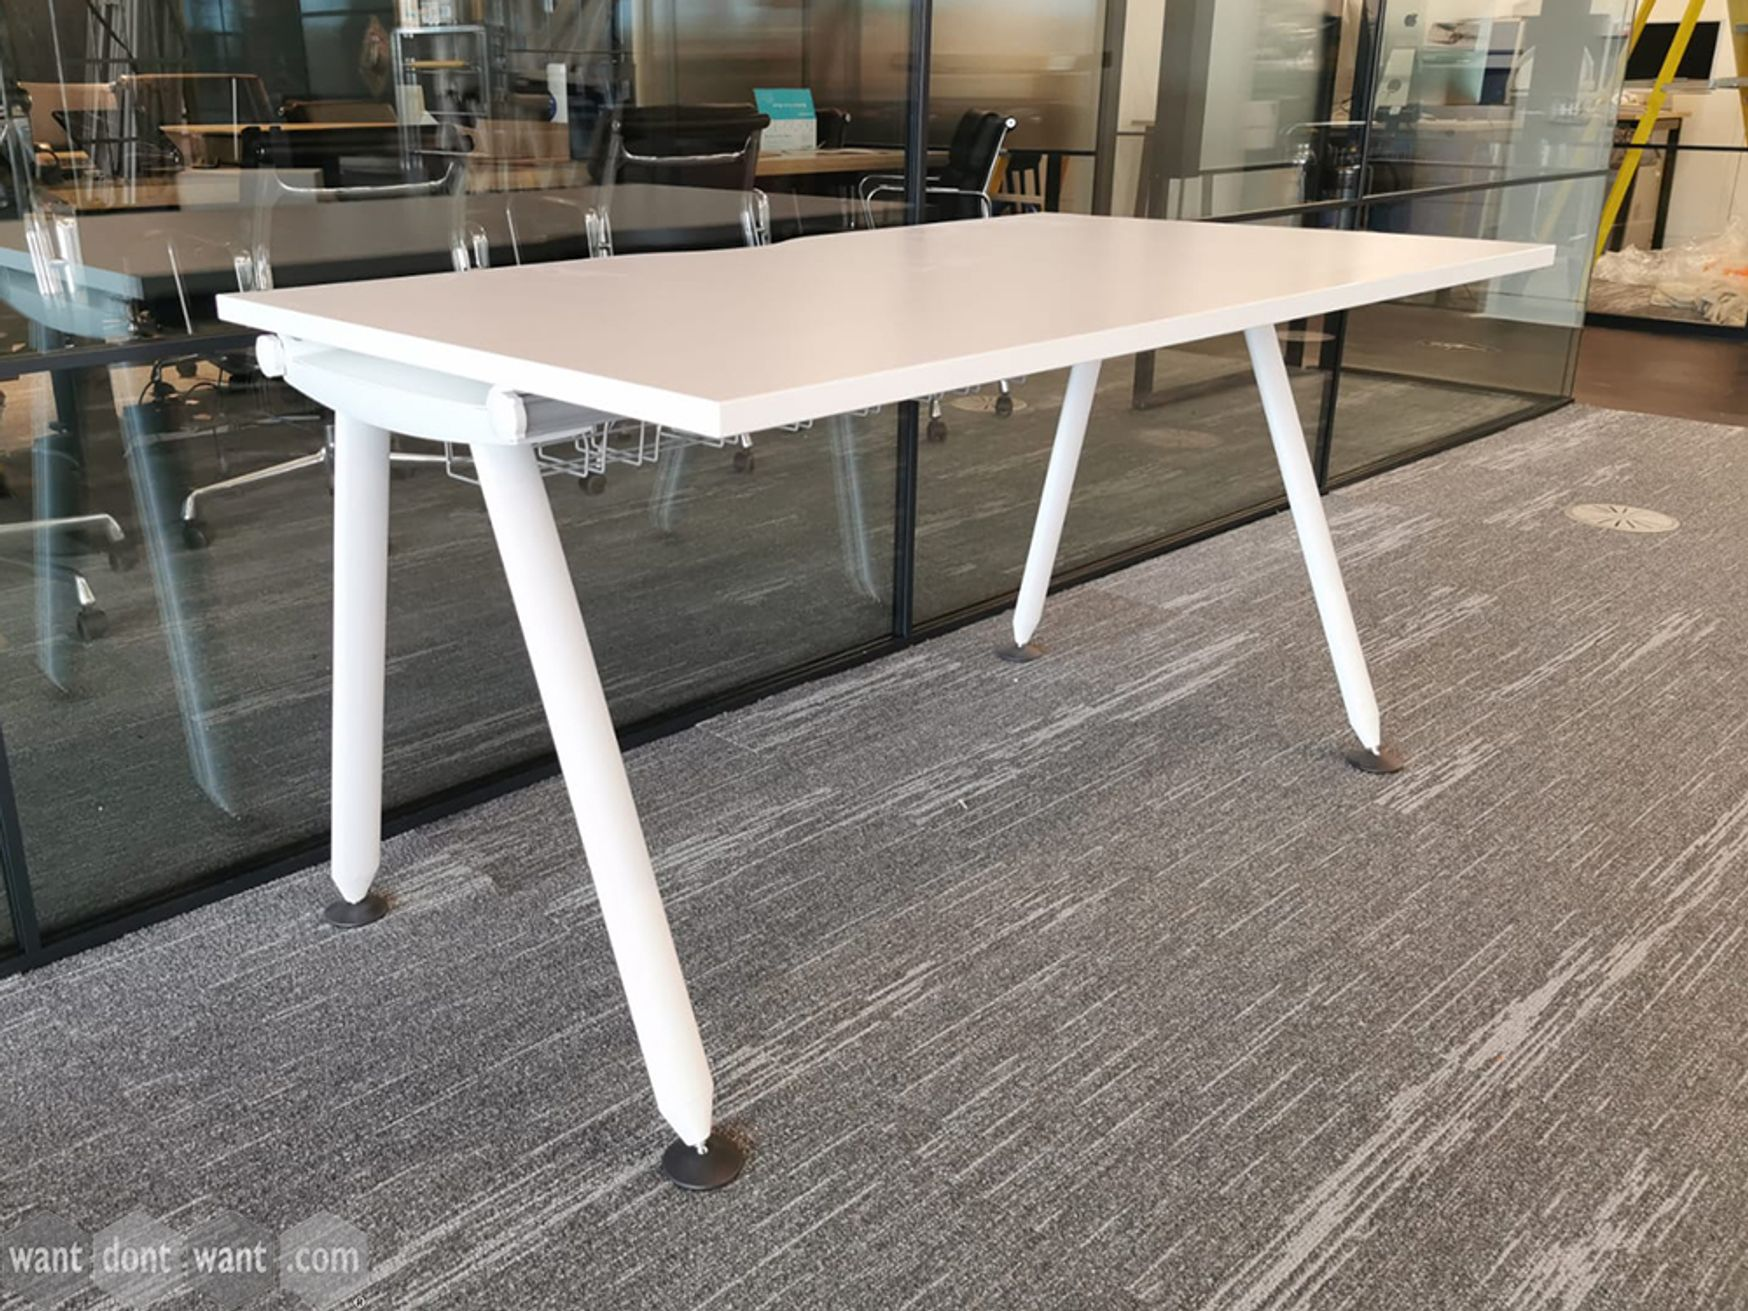 Used 1400mm x 800mm White Herman Miller Abak Desks with White Legs and Cable Trays